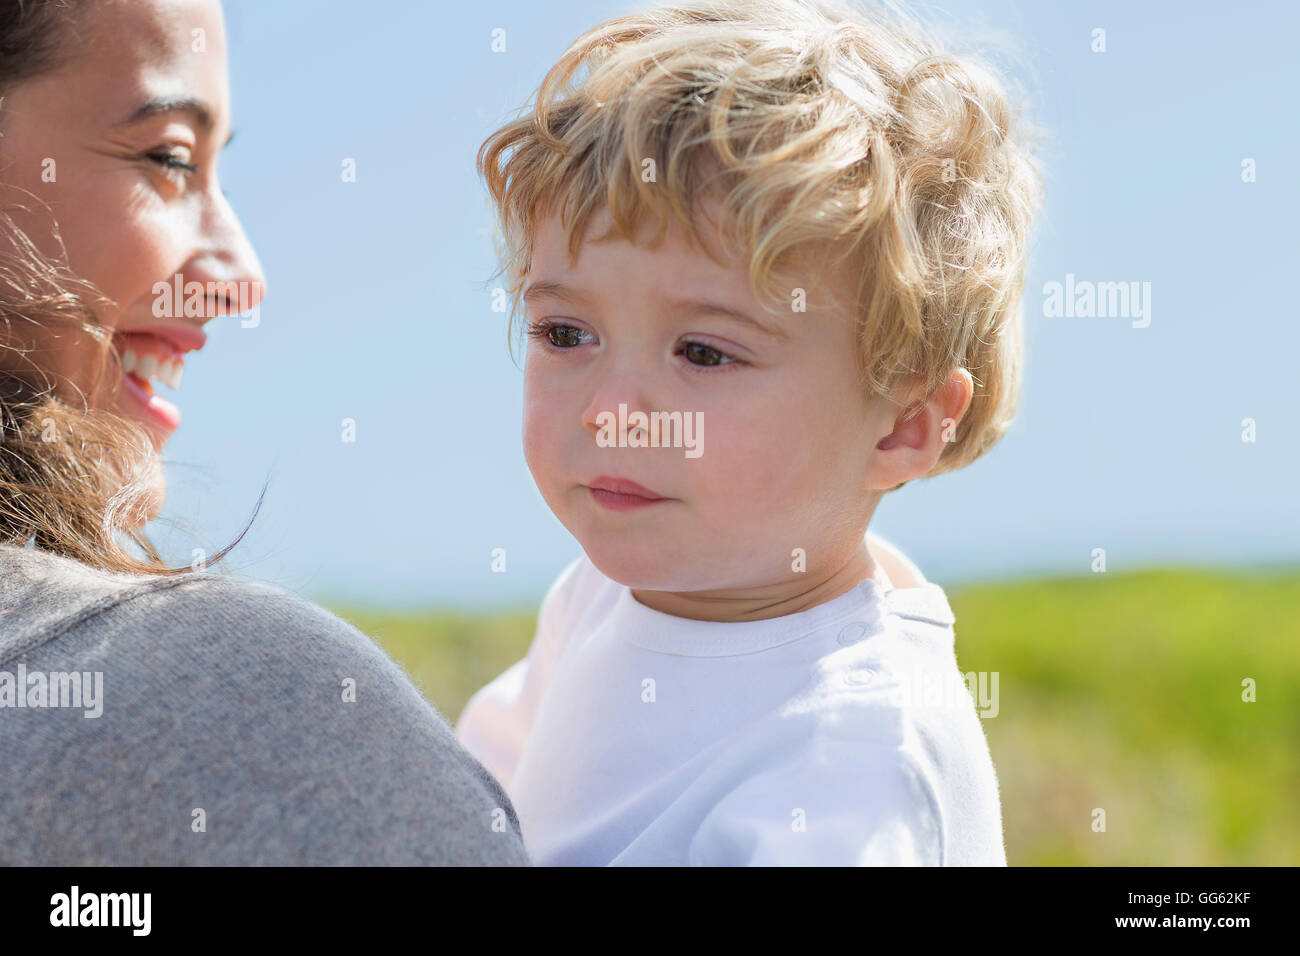 Close-up of woman with her baby boy Photo Stock